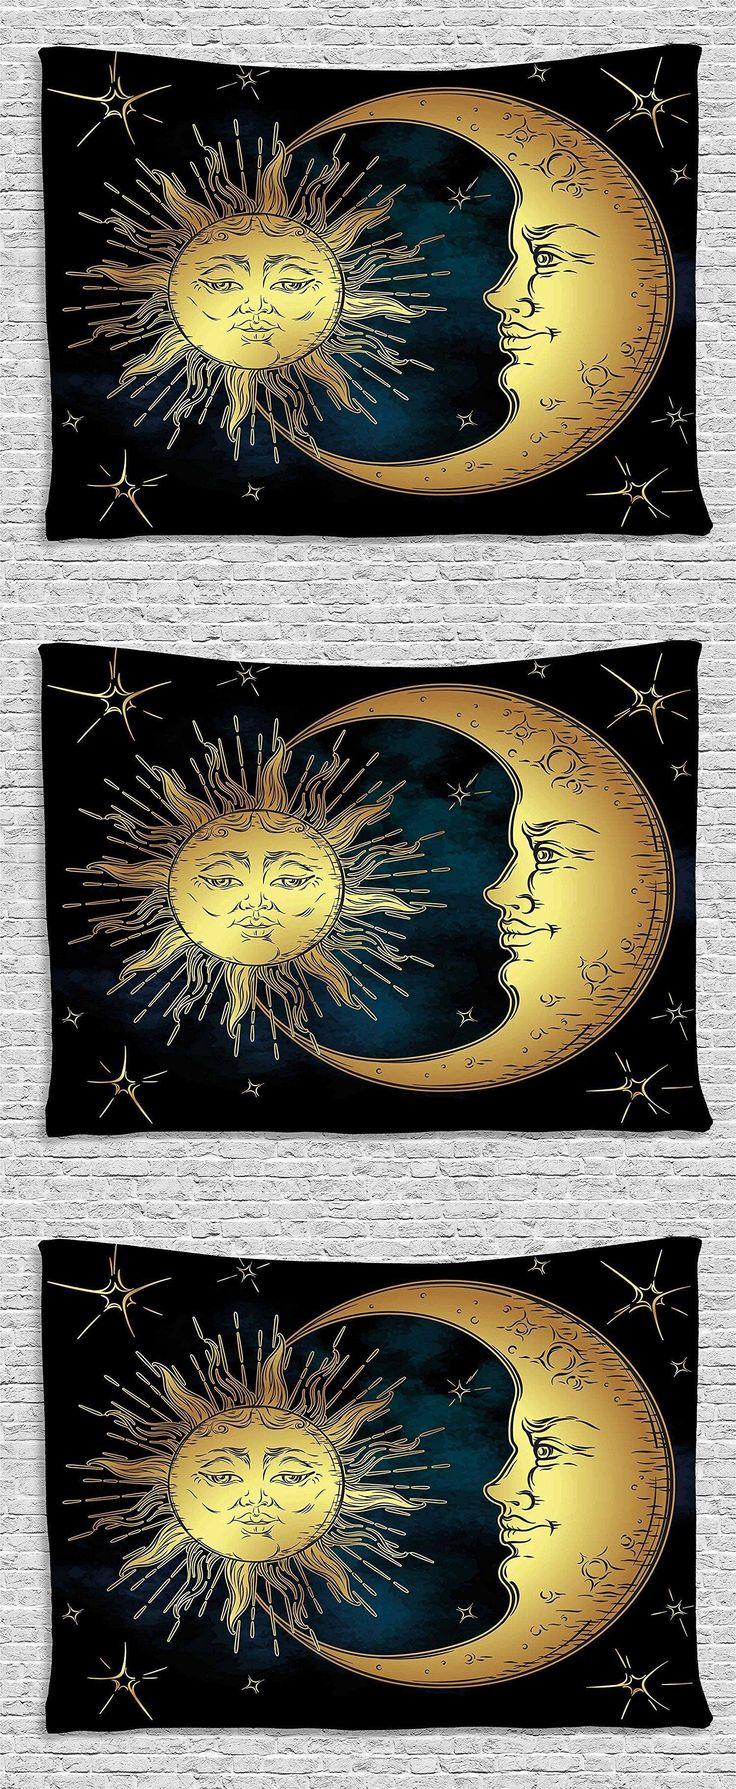 Tapestries 38237: Sun And Moon Psychedelic Tapestry Zen Art Decor Wall-Hanging Bedding Throw Dorm -> BUY IT NOW ONLY: $37.45 on eBay!